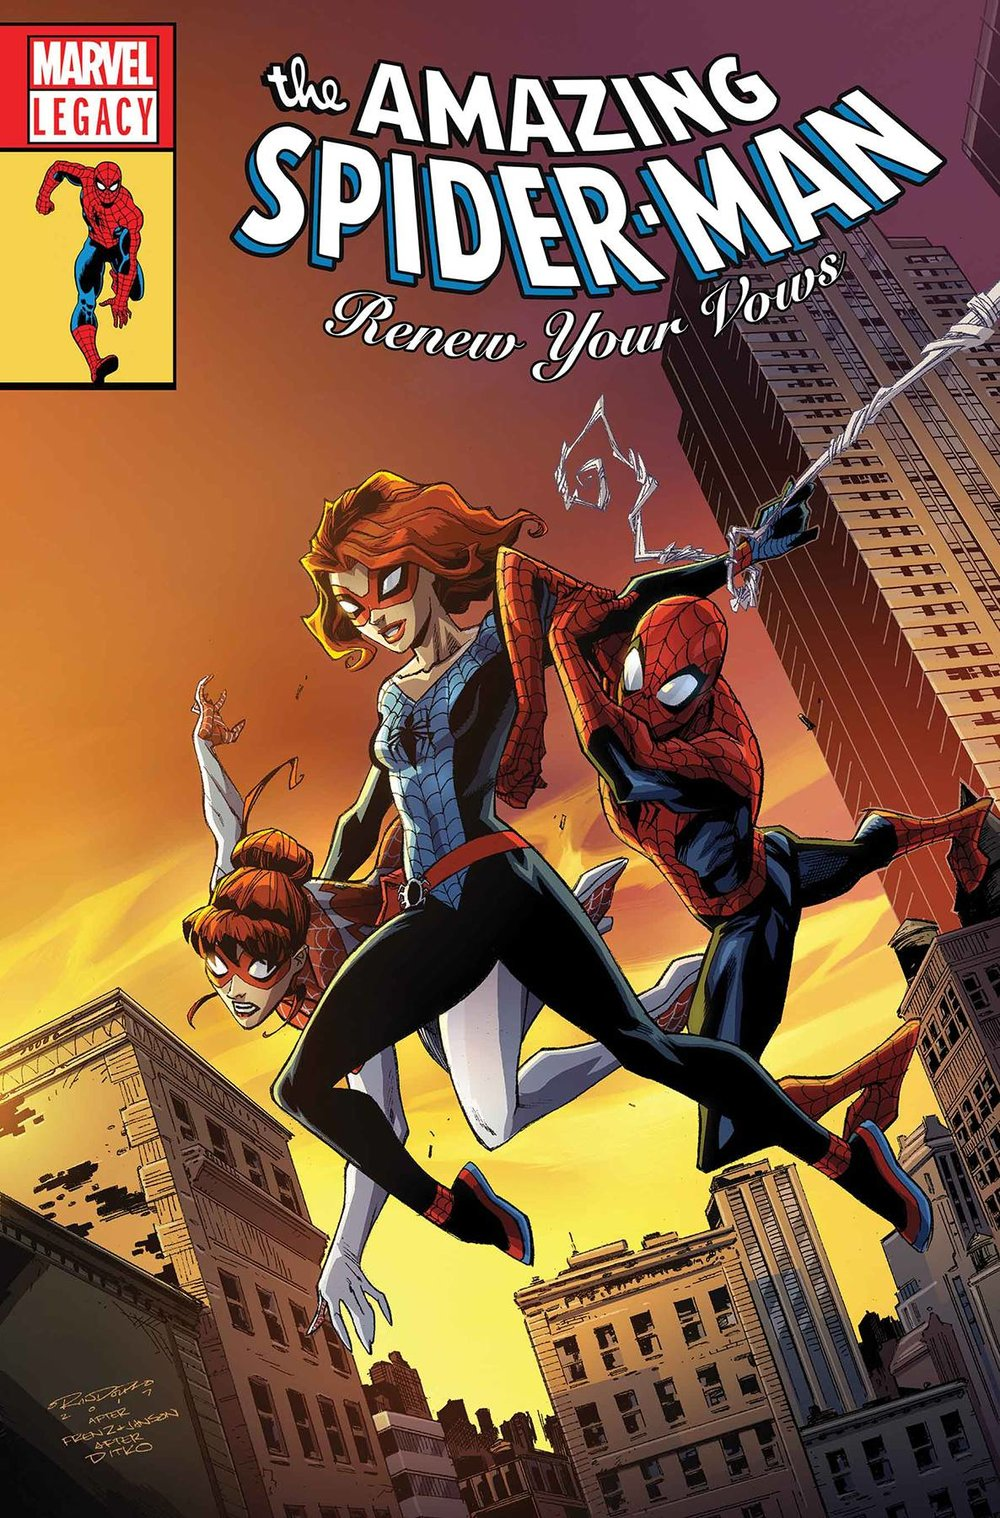 AMAZING SPIDER-MAN RENEW YOUR VOWS 13 RANDOLPH LH LEG.jpg